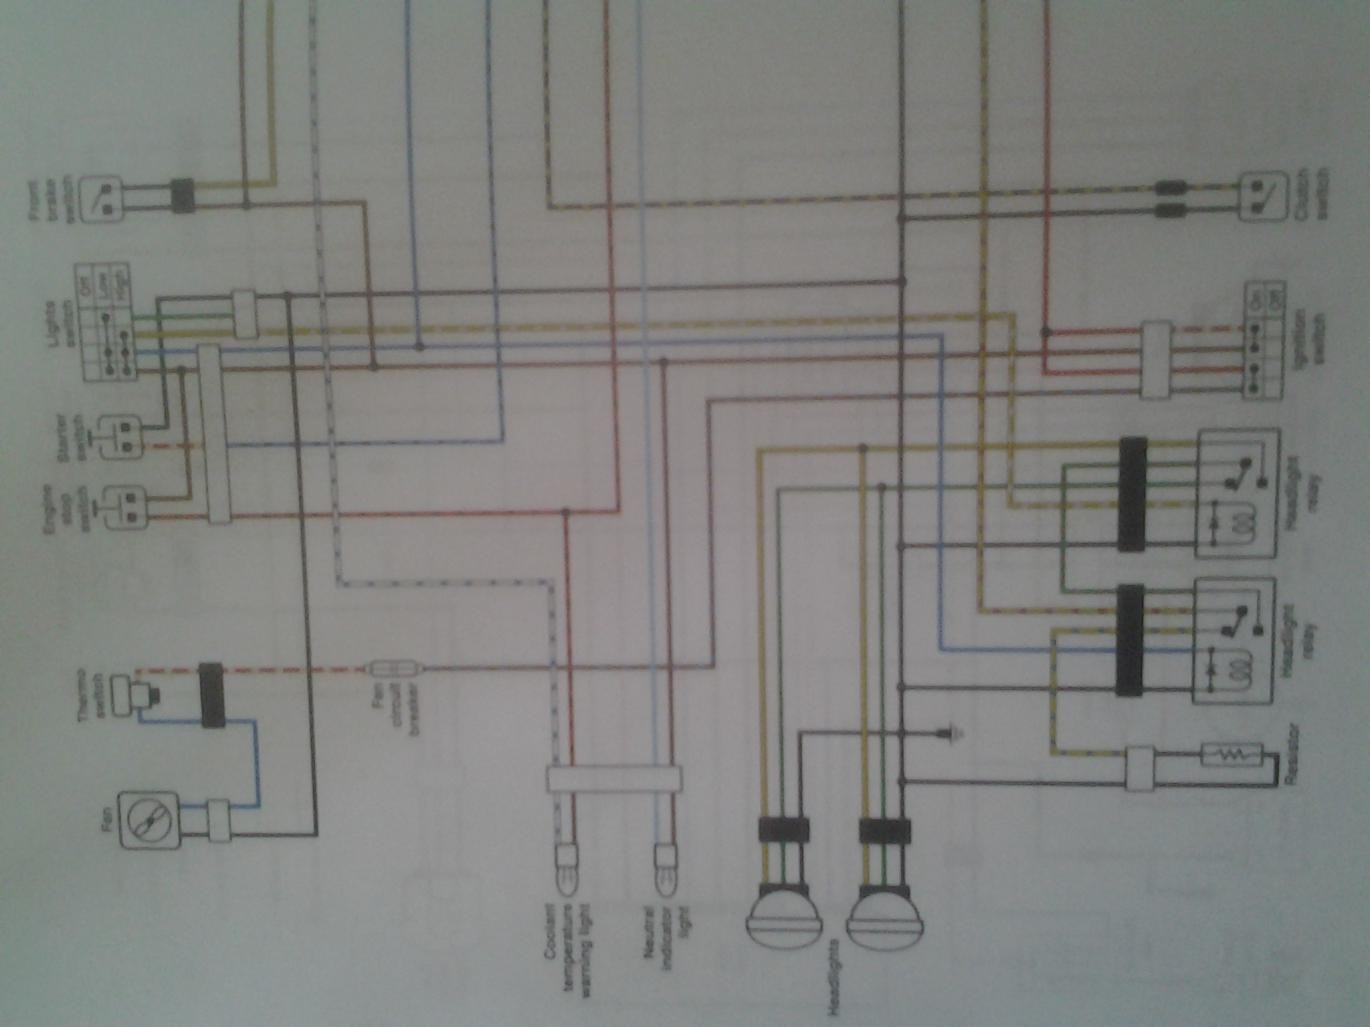 04 Yfz 450 Wiring Schematic Diagram 07 Ltr Solenoid 450r Harness Rh Wiringharness Today Yamaha Key